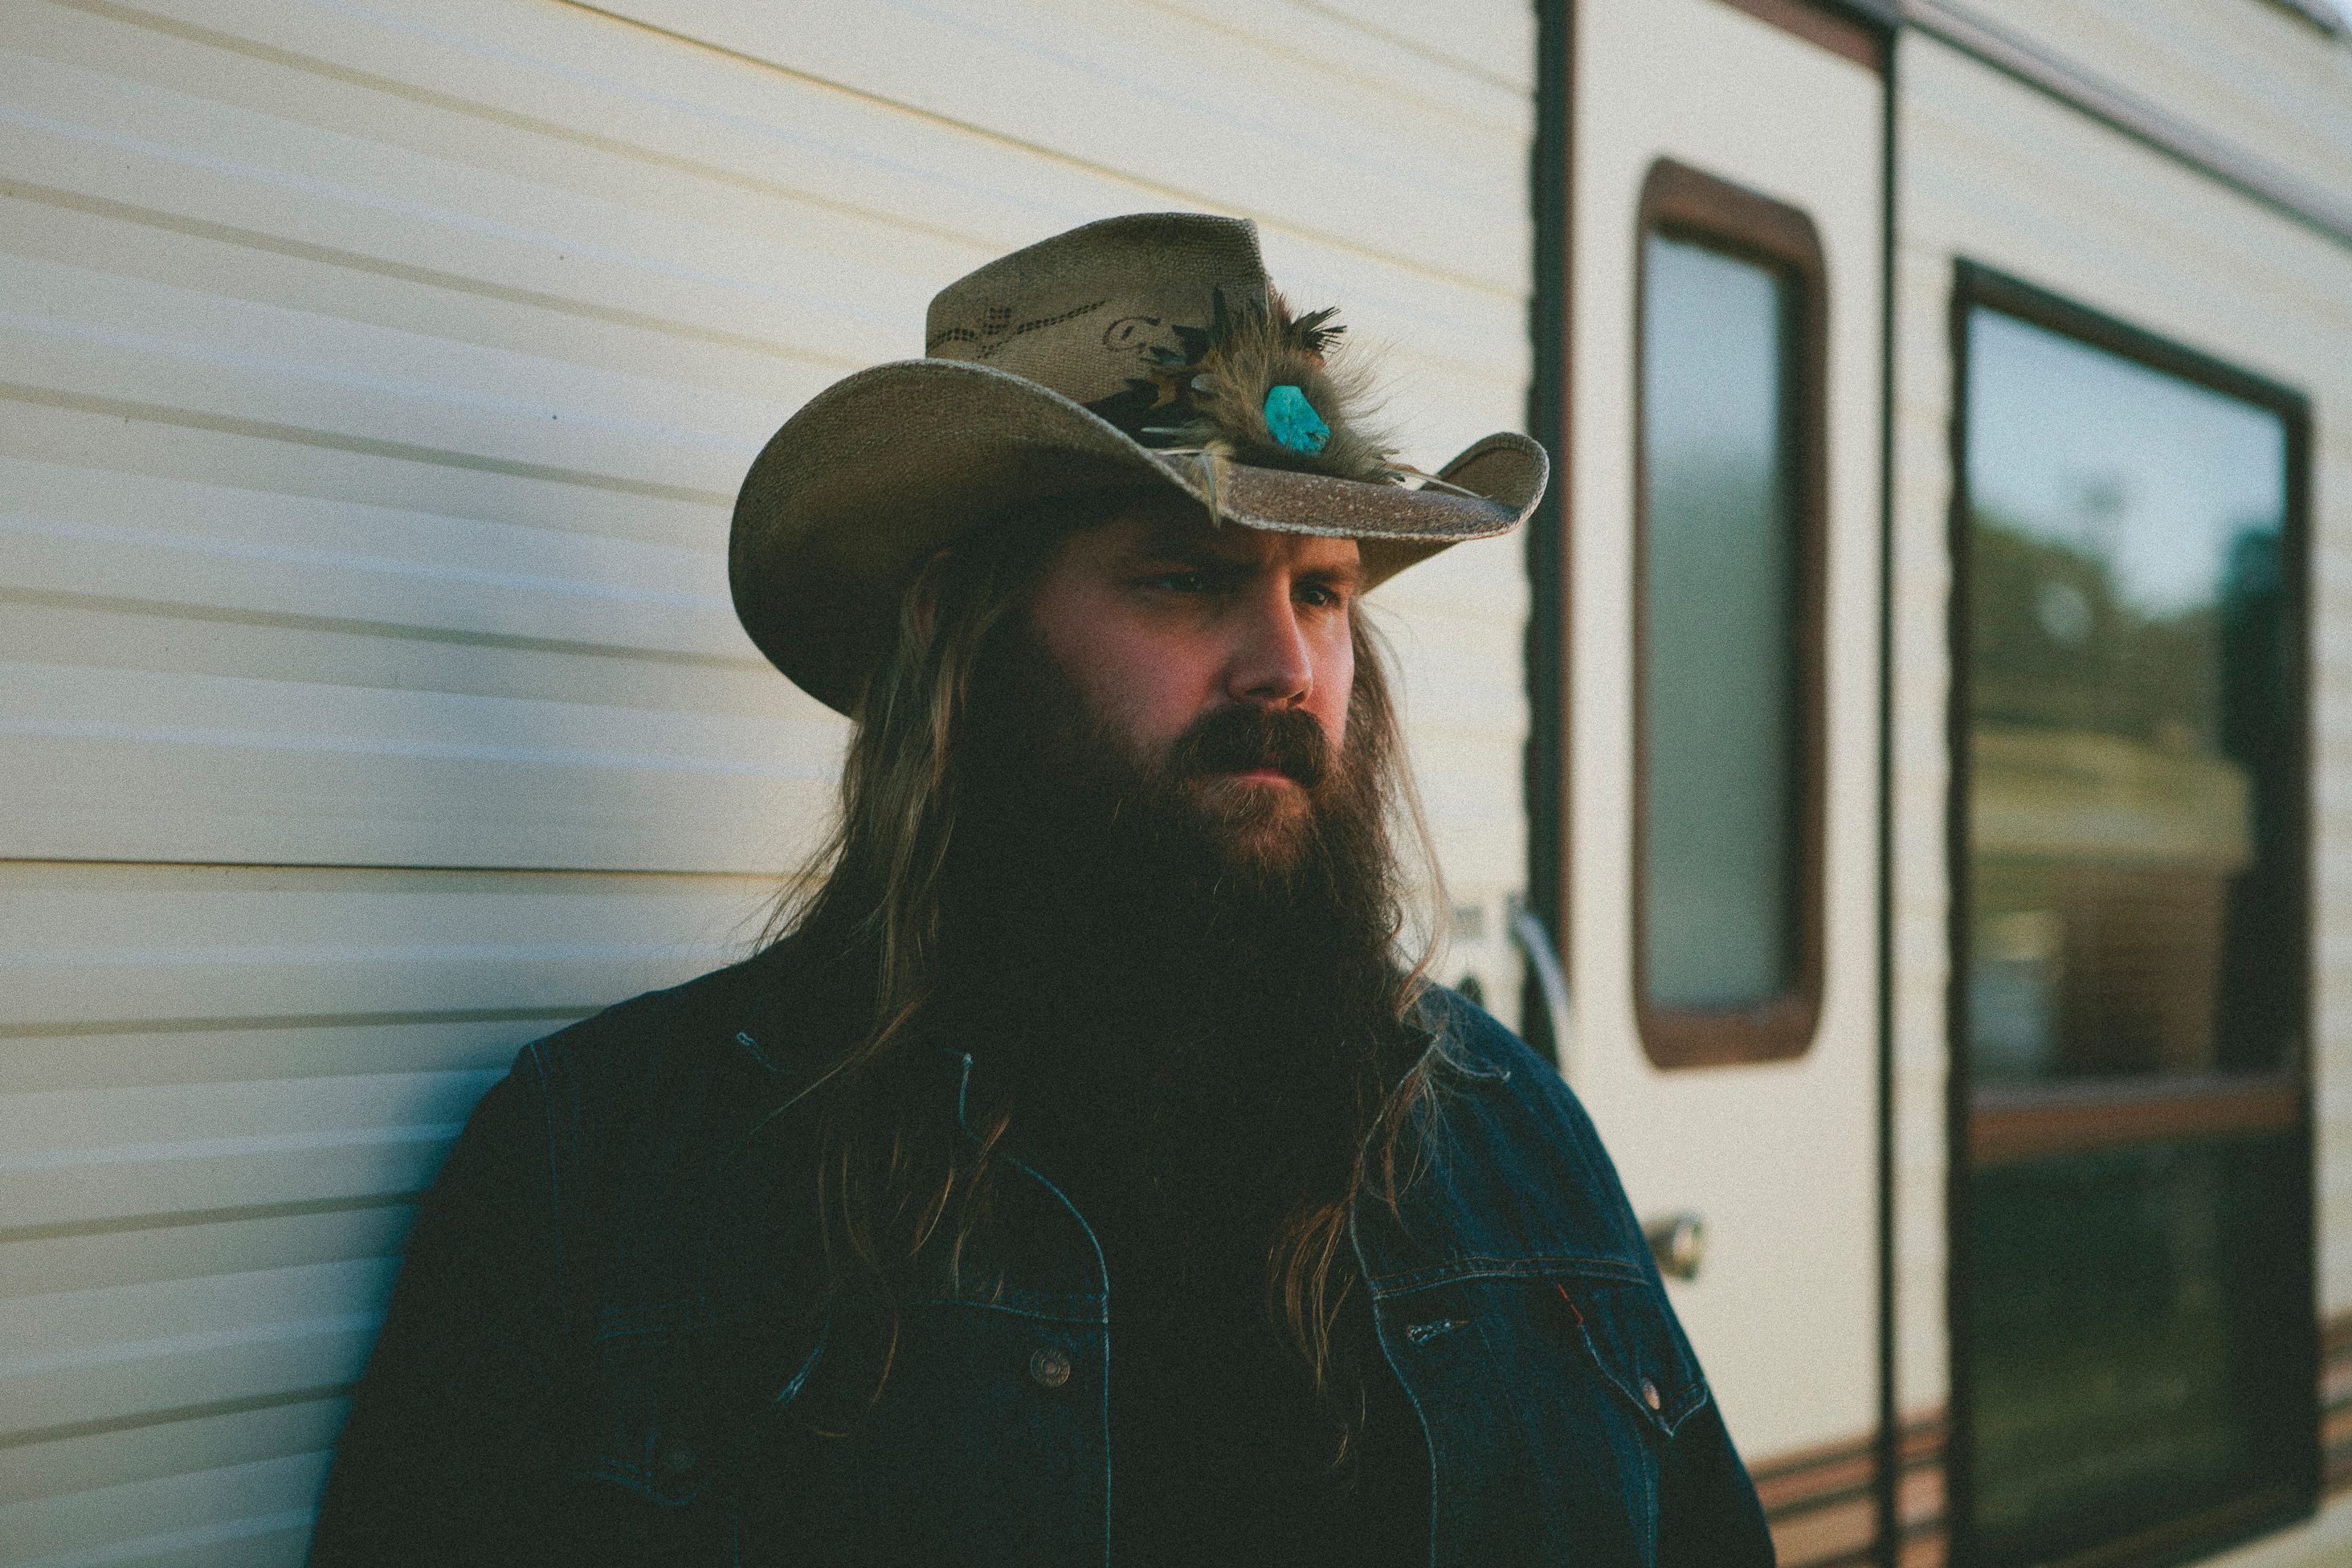 Chris stapleton shares thoughts on his diverse writing